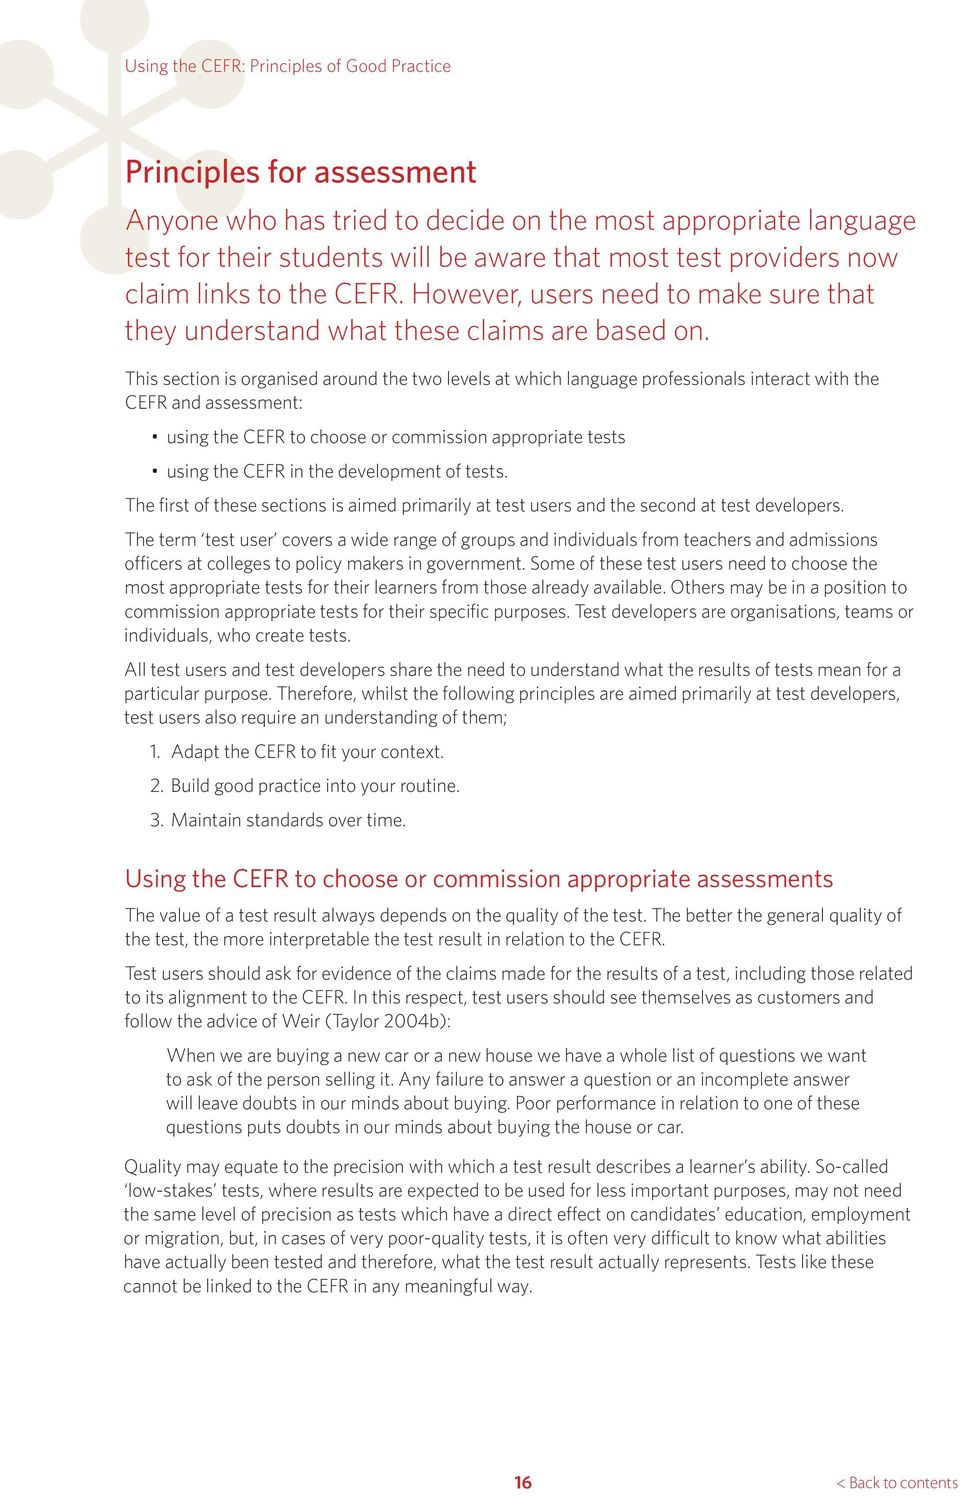 This section is organised around the two levels at which language professionals interact with the CEFR and assessment: using the CEFR to choose or commission appropriate tests using the CEFR in the